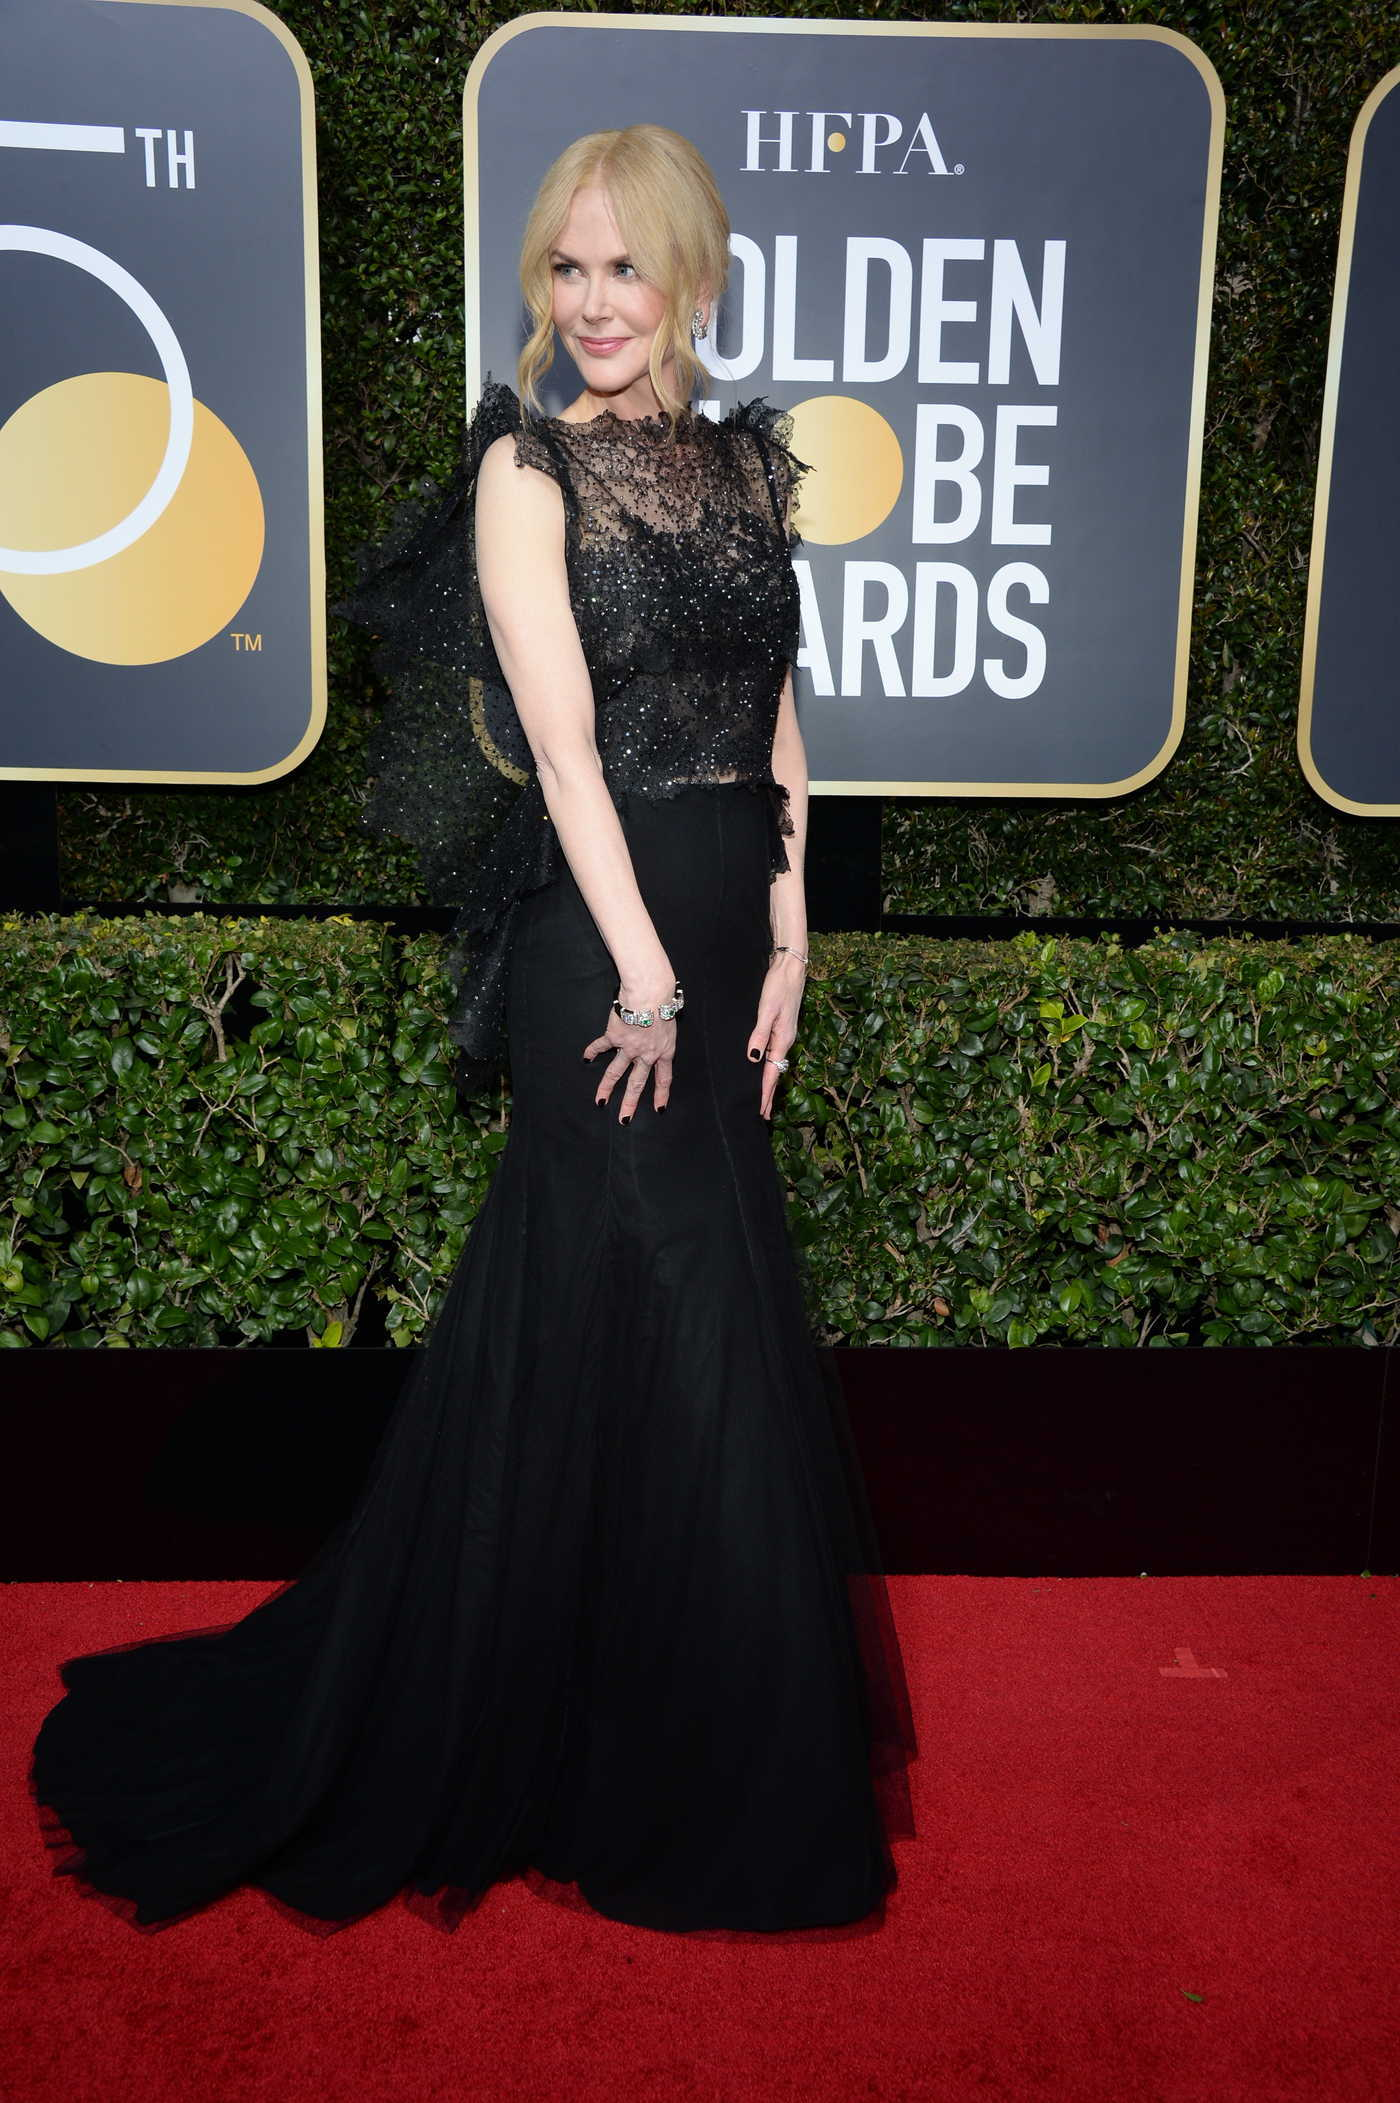 Nicole Kidman at the 75th Annual Golden Globe Awards in Beverly Hills 01/07/2018